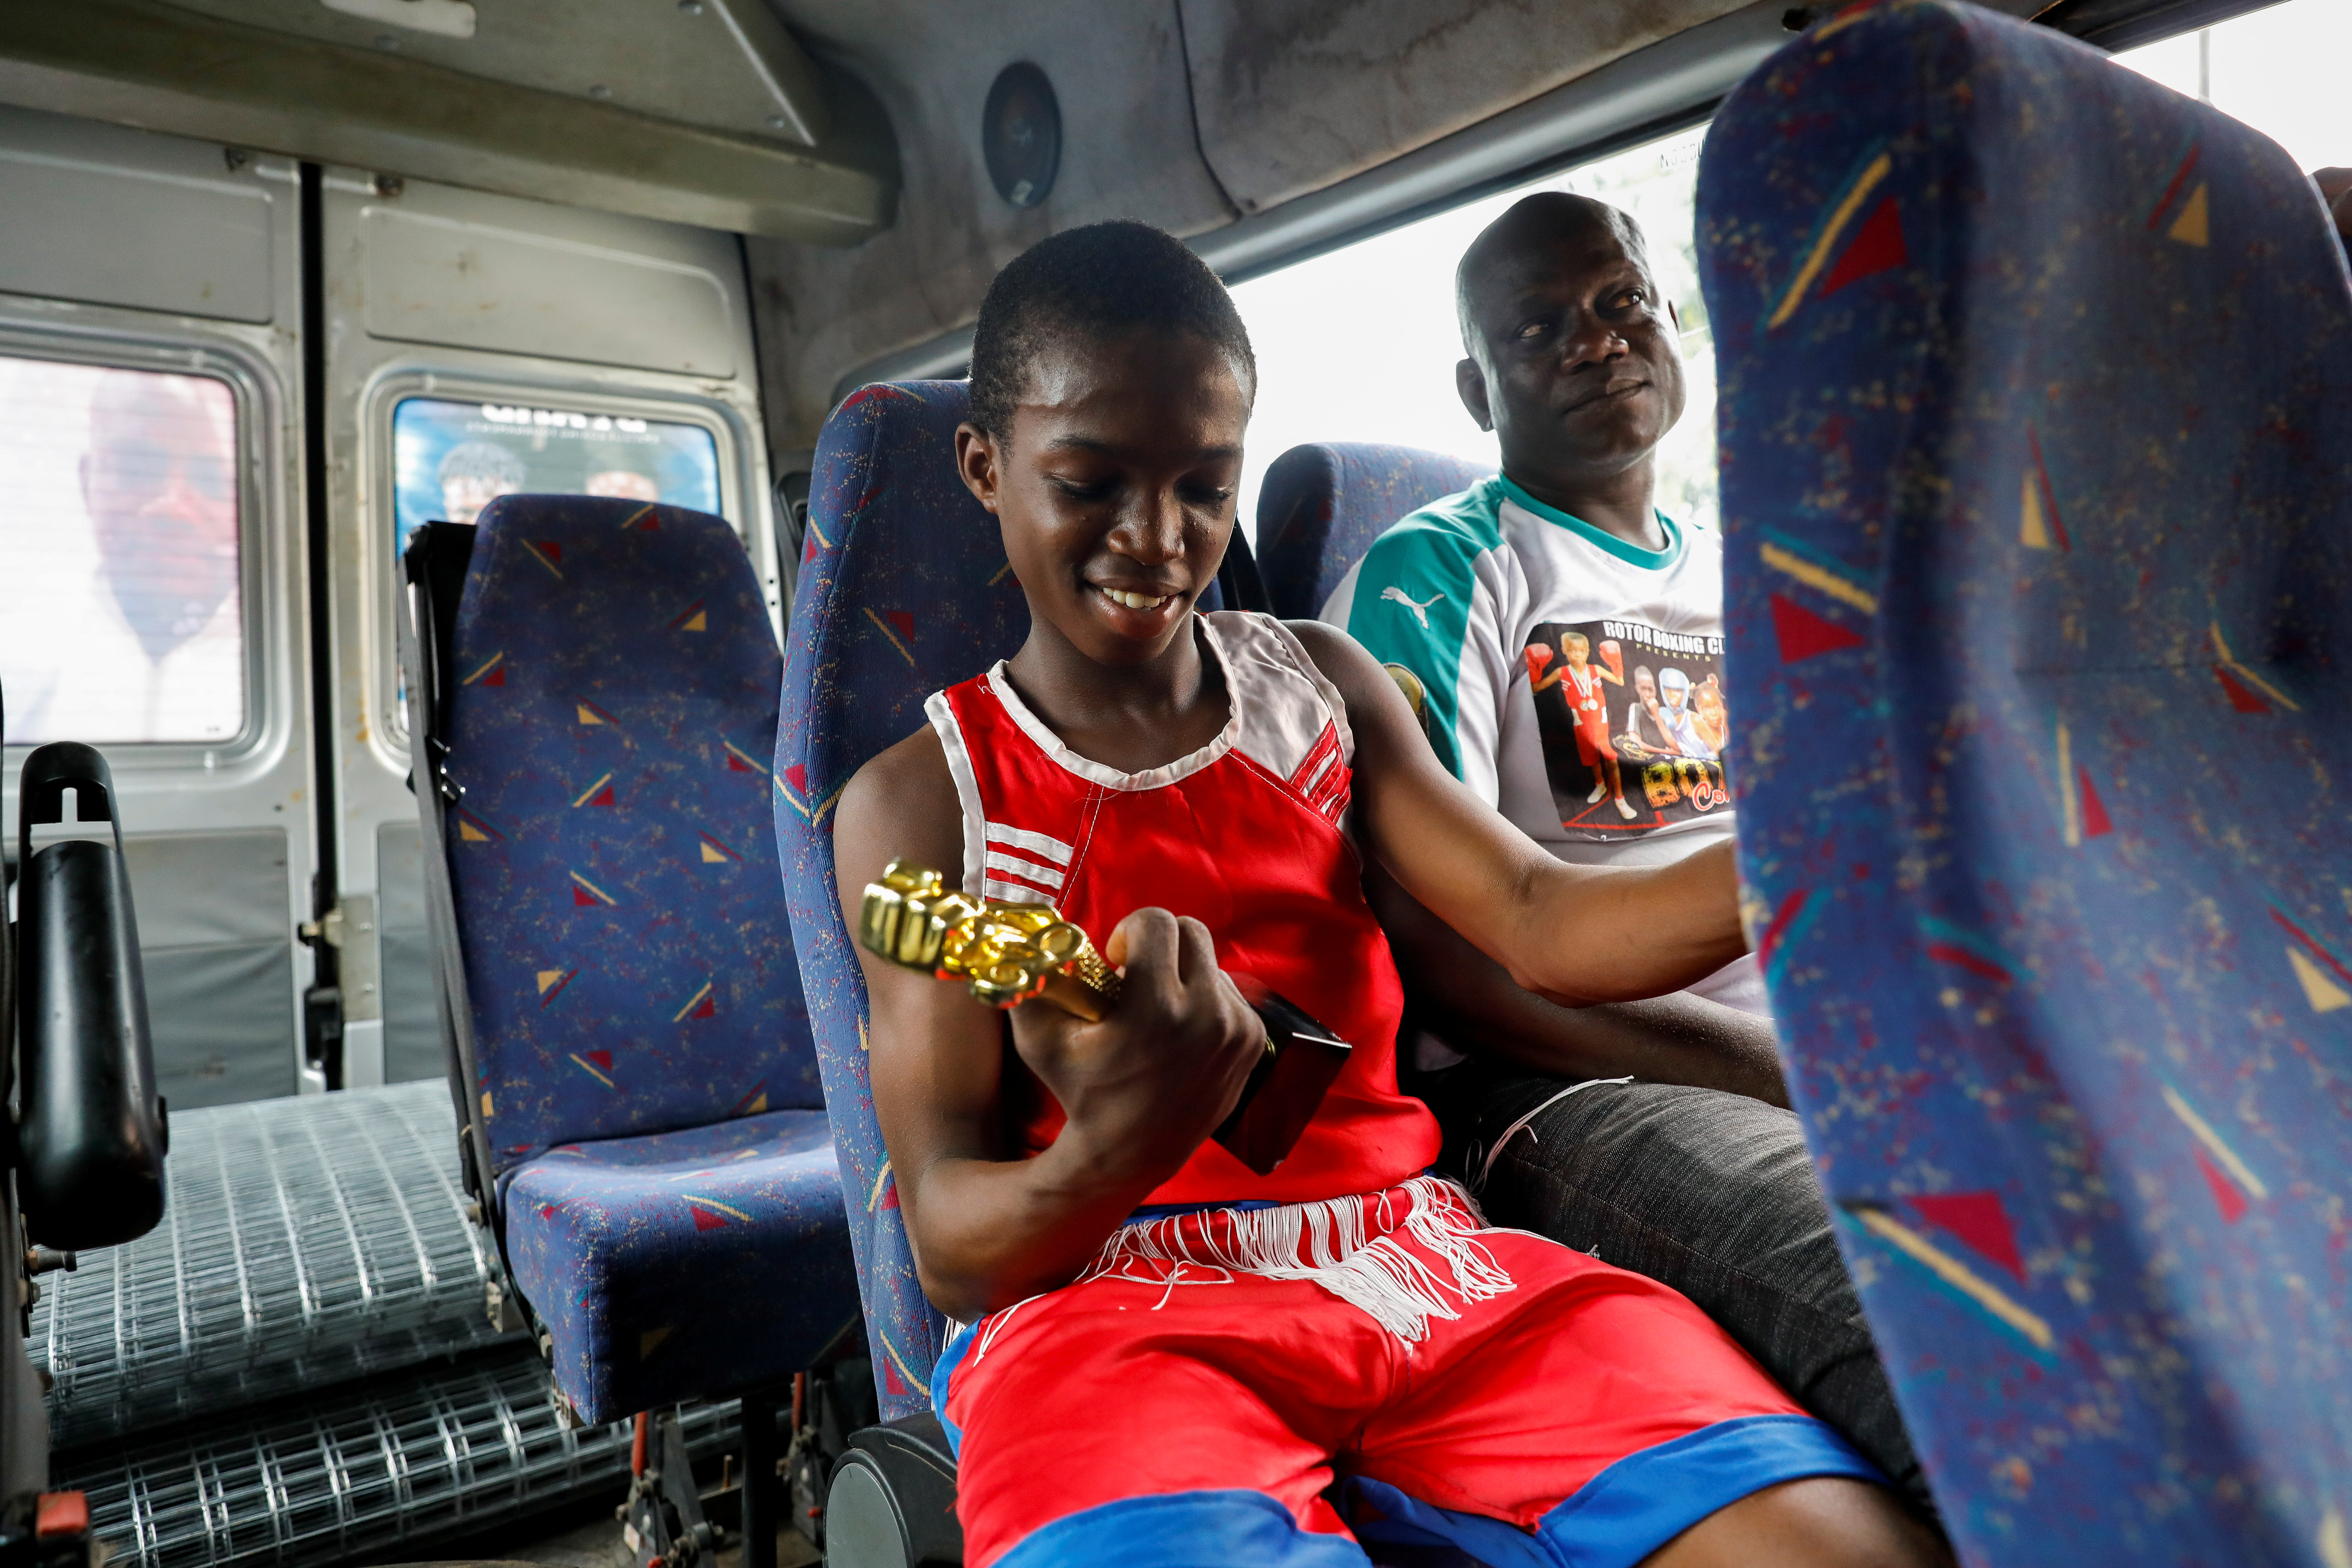 Boxer Tijani Abdulazeez, popularly known as TJ, 15, looks at his trophy on his way home after winning the youth tournament in Iyana-ipaja, Lagos, Nigeria June 26, 2021.  REUTERS/Temilade Adelaja